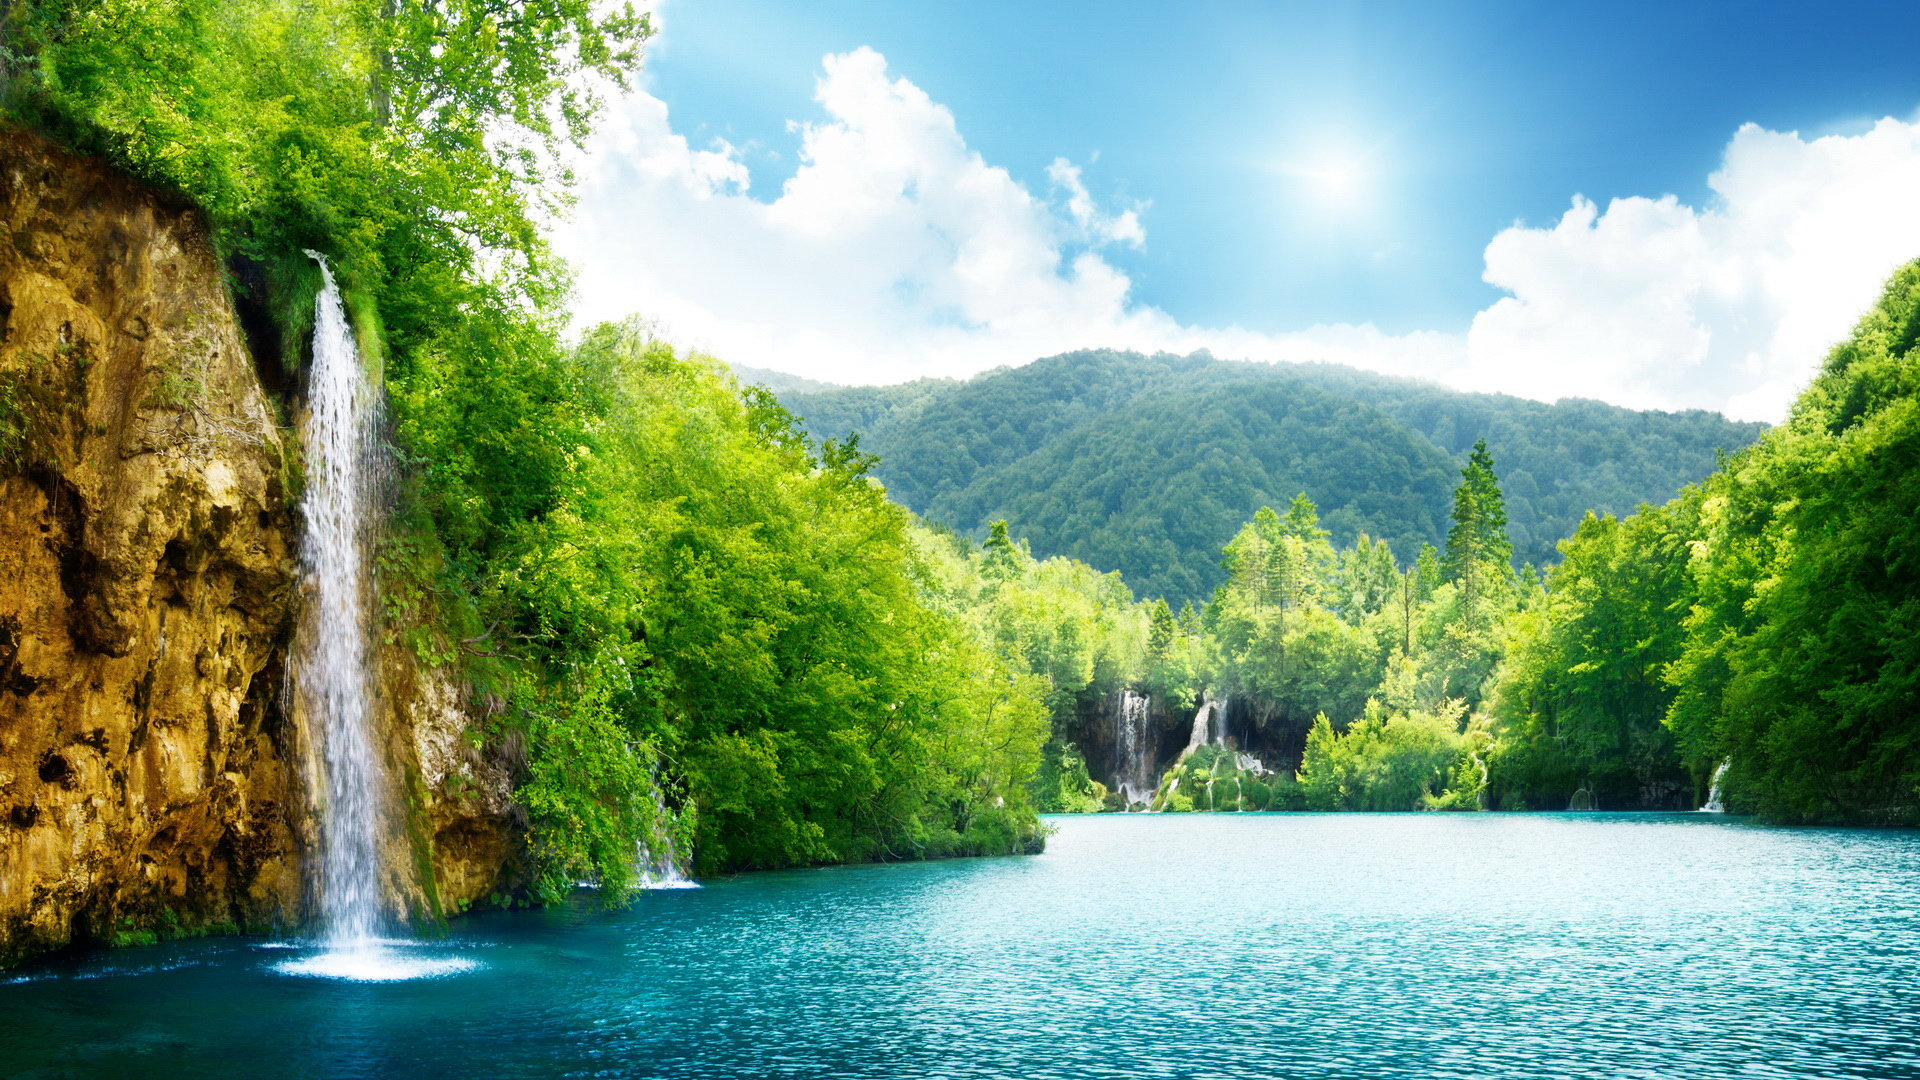 Download HD Scenery Wallpapers